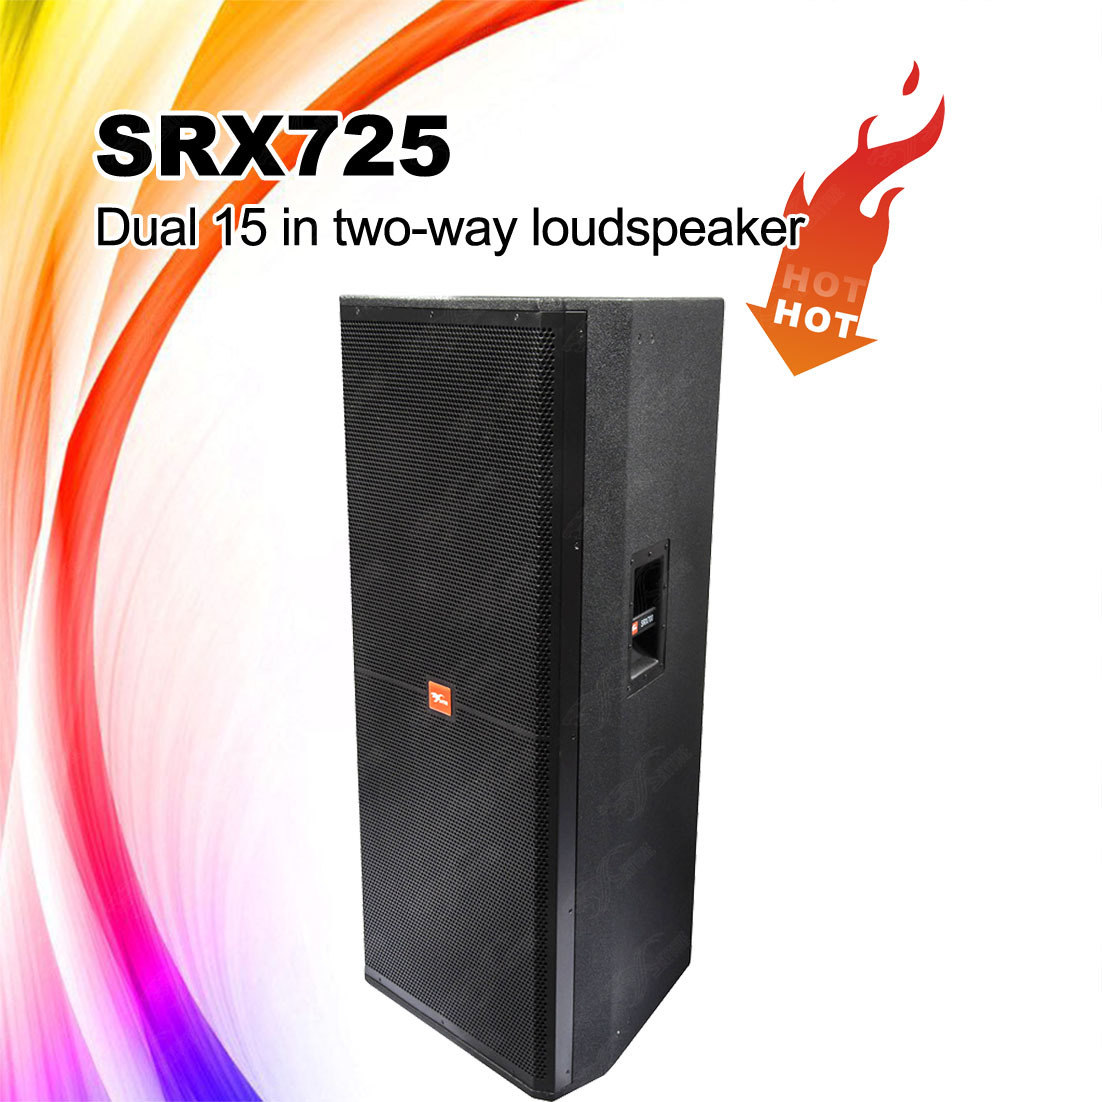 "Srx725 Double 15 Inch (15"") PA Concert Speaker Box"